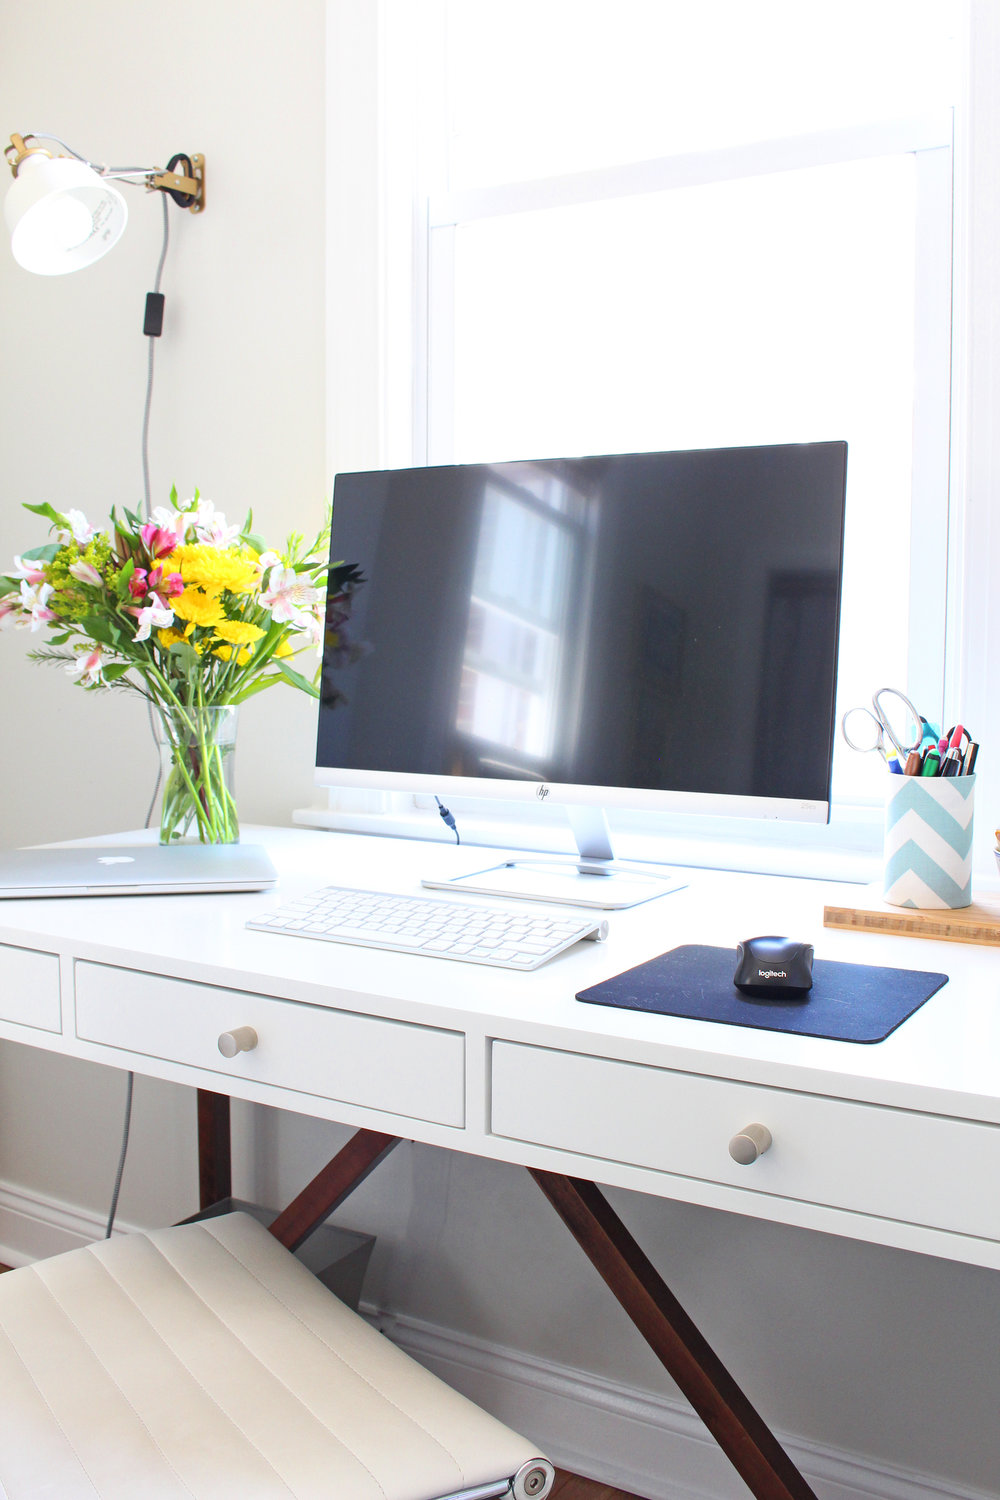 Sleek and modern desk for Mix & Match's home office.